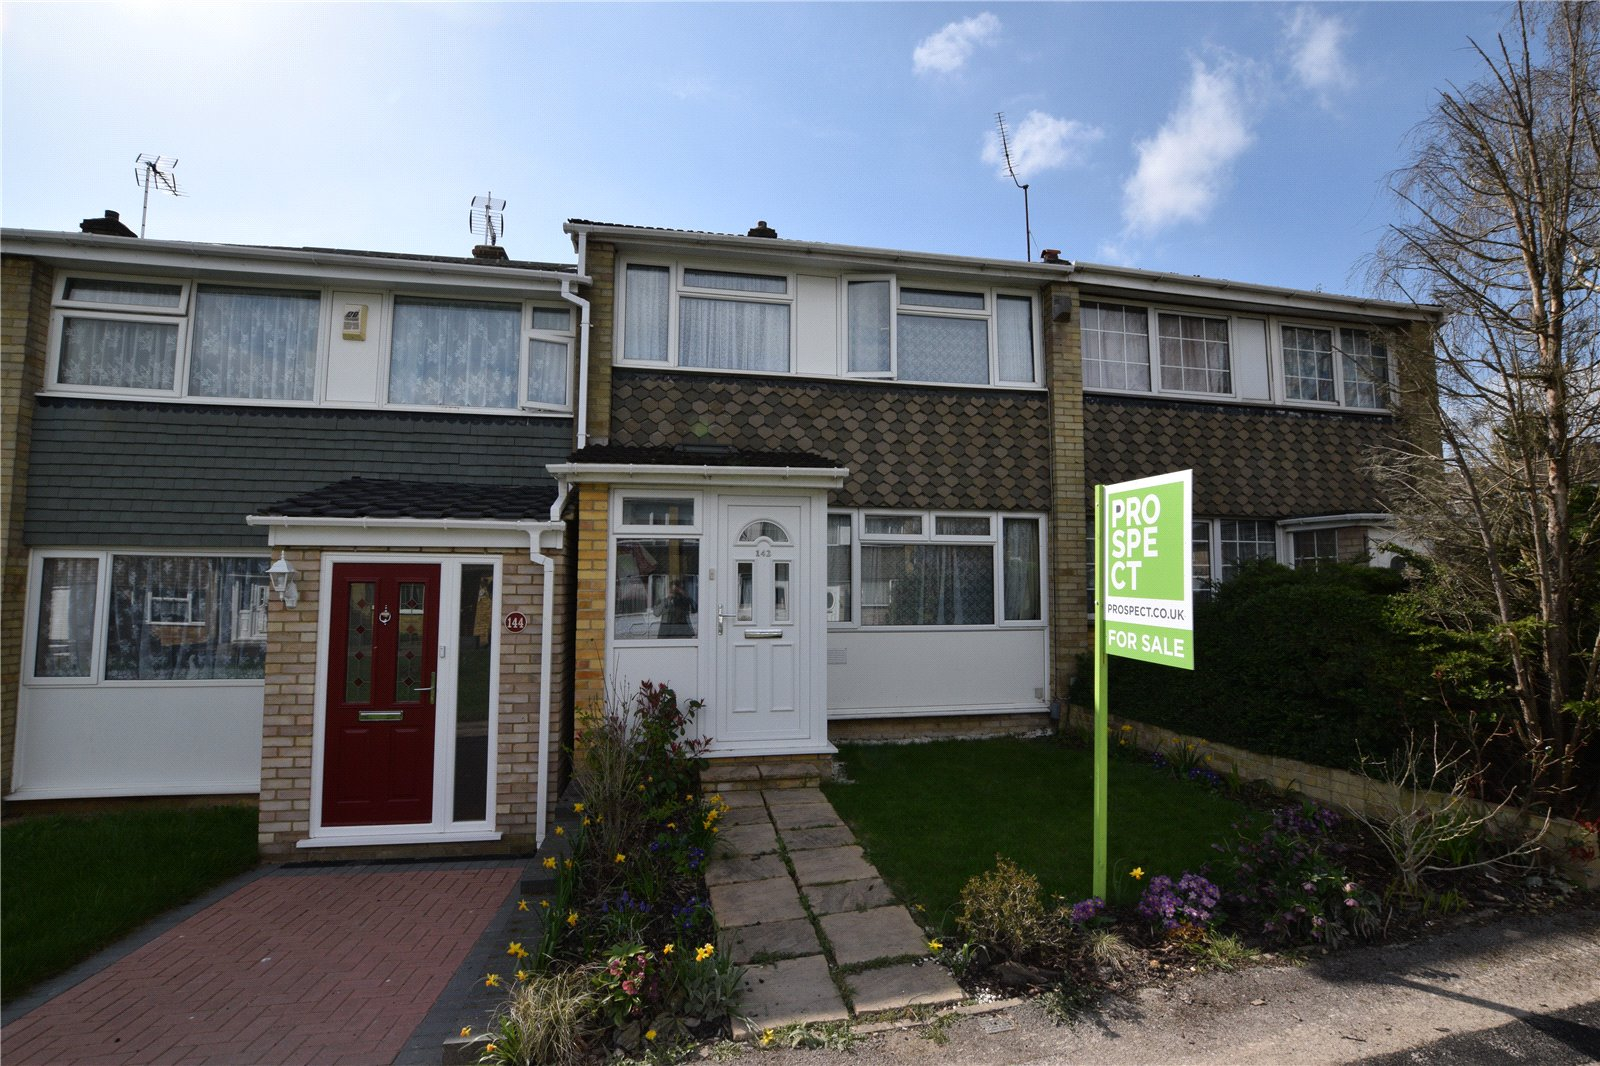 3 Bedrooms Terraced House for sale in Hatford Road, Reading, Berkshire, RG30